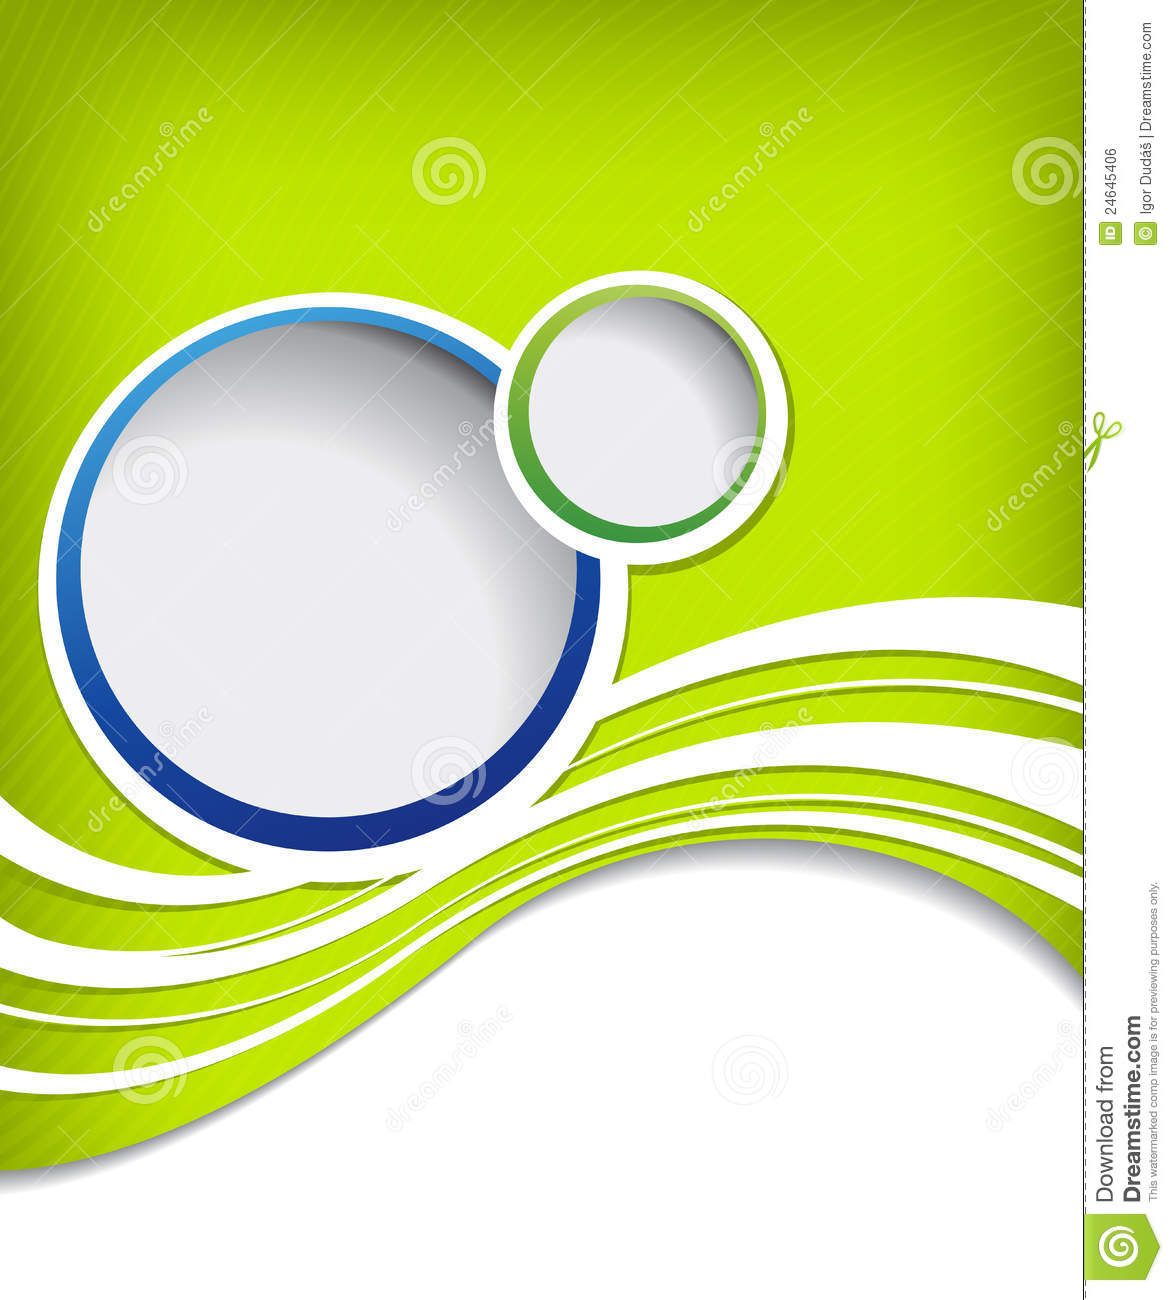 Flyer design stock illustration. Illustration of print   24645406